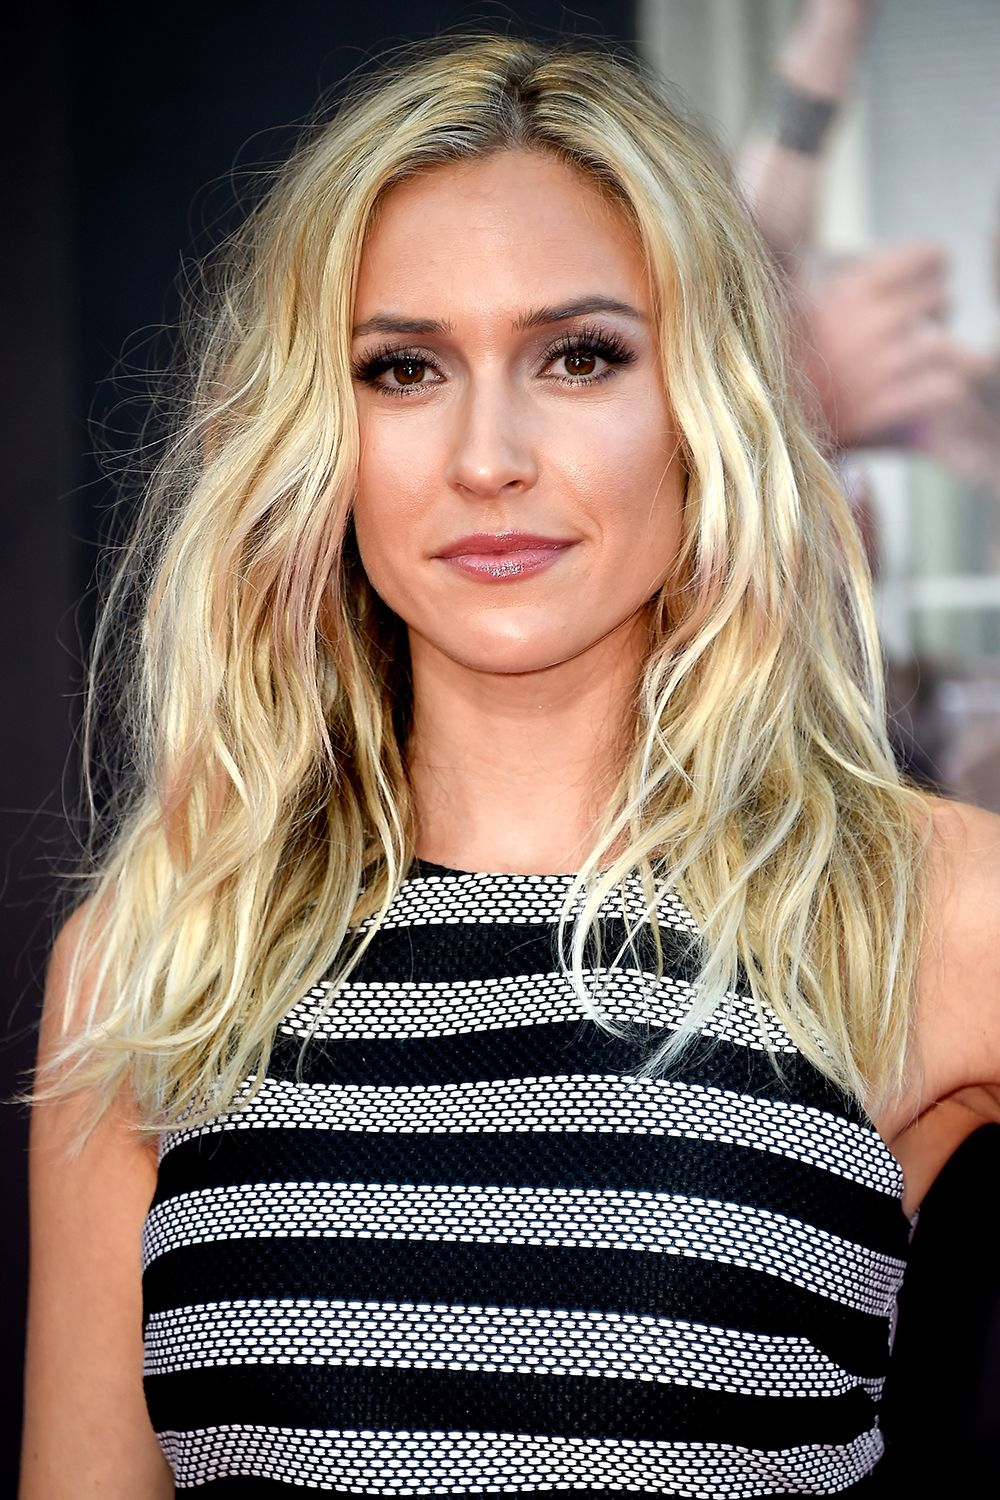 """<p><ual-wrapper>""""My goal is to never get Botox or any other filler or injectable, for that matter,"""" <a href=""""http://www.health.com/beauty/this-is-how-kristin-cavallari-plans-to-avoid-botox"""" target=""""_blank"""" data-tracking-id=""""recirc-text-link"""">she writes</a> in her book <em data-redactor-tag=""""em"""" data-verified=""""redactor"""">Balancing in Heels: My Journey to Health, Happiness, and Making It All Wor</em>k. """" </ual-wrapper><ual-wrapper>I don't hate on people who get Botox&#x3B; I would just prefer to do everything a more natural way. We don't know the long-term effects of that stuff, and it doesn't seem right to me. We are supposed to age—that's part of life!""""</ual-wrapper></p>"""